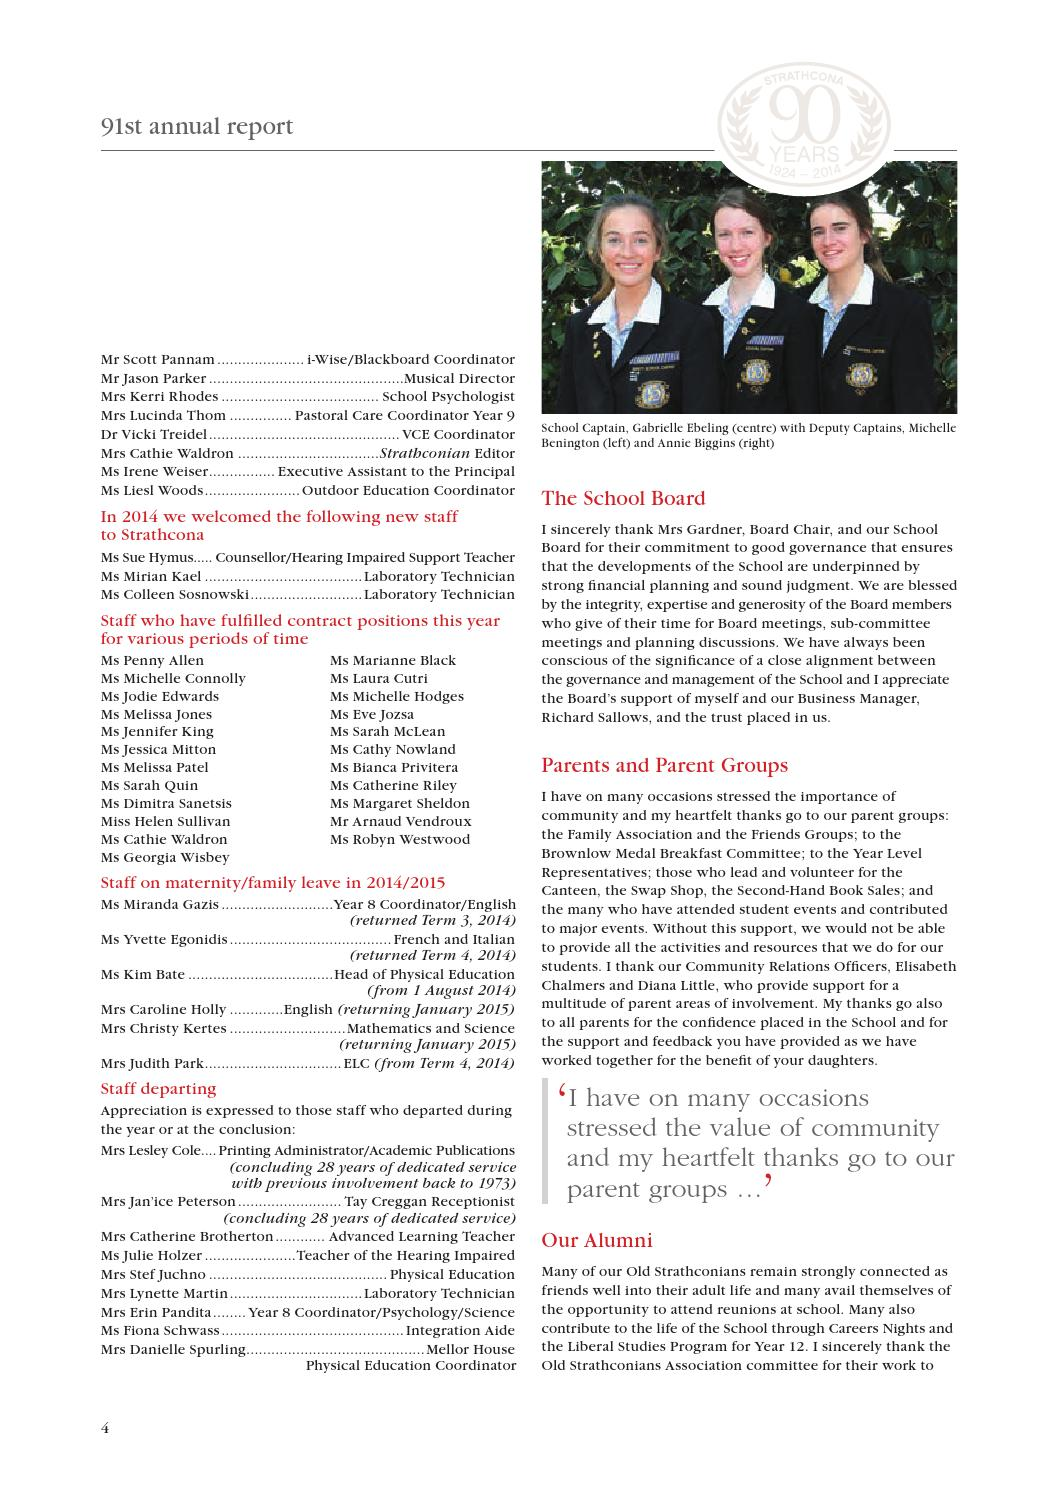 Strathcona Annual Report 2014 by Strathcona Girls Grammar